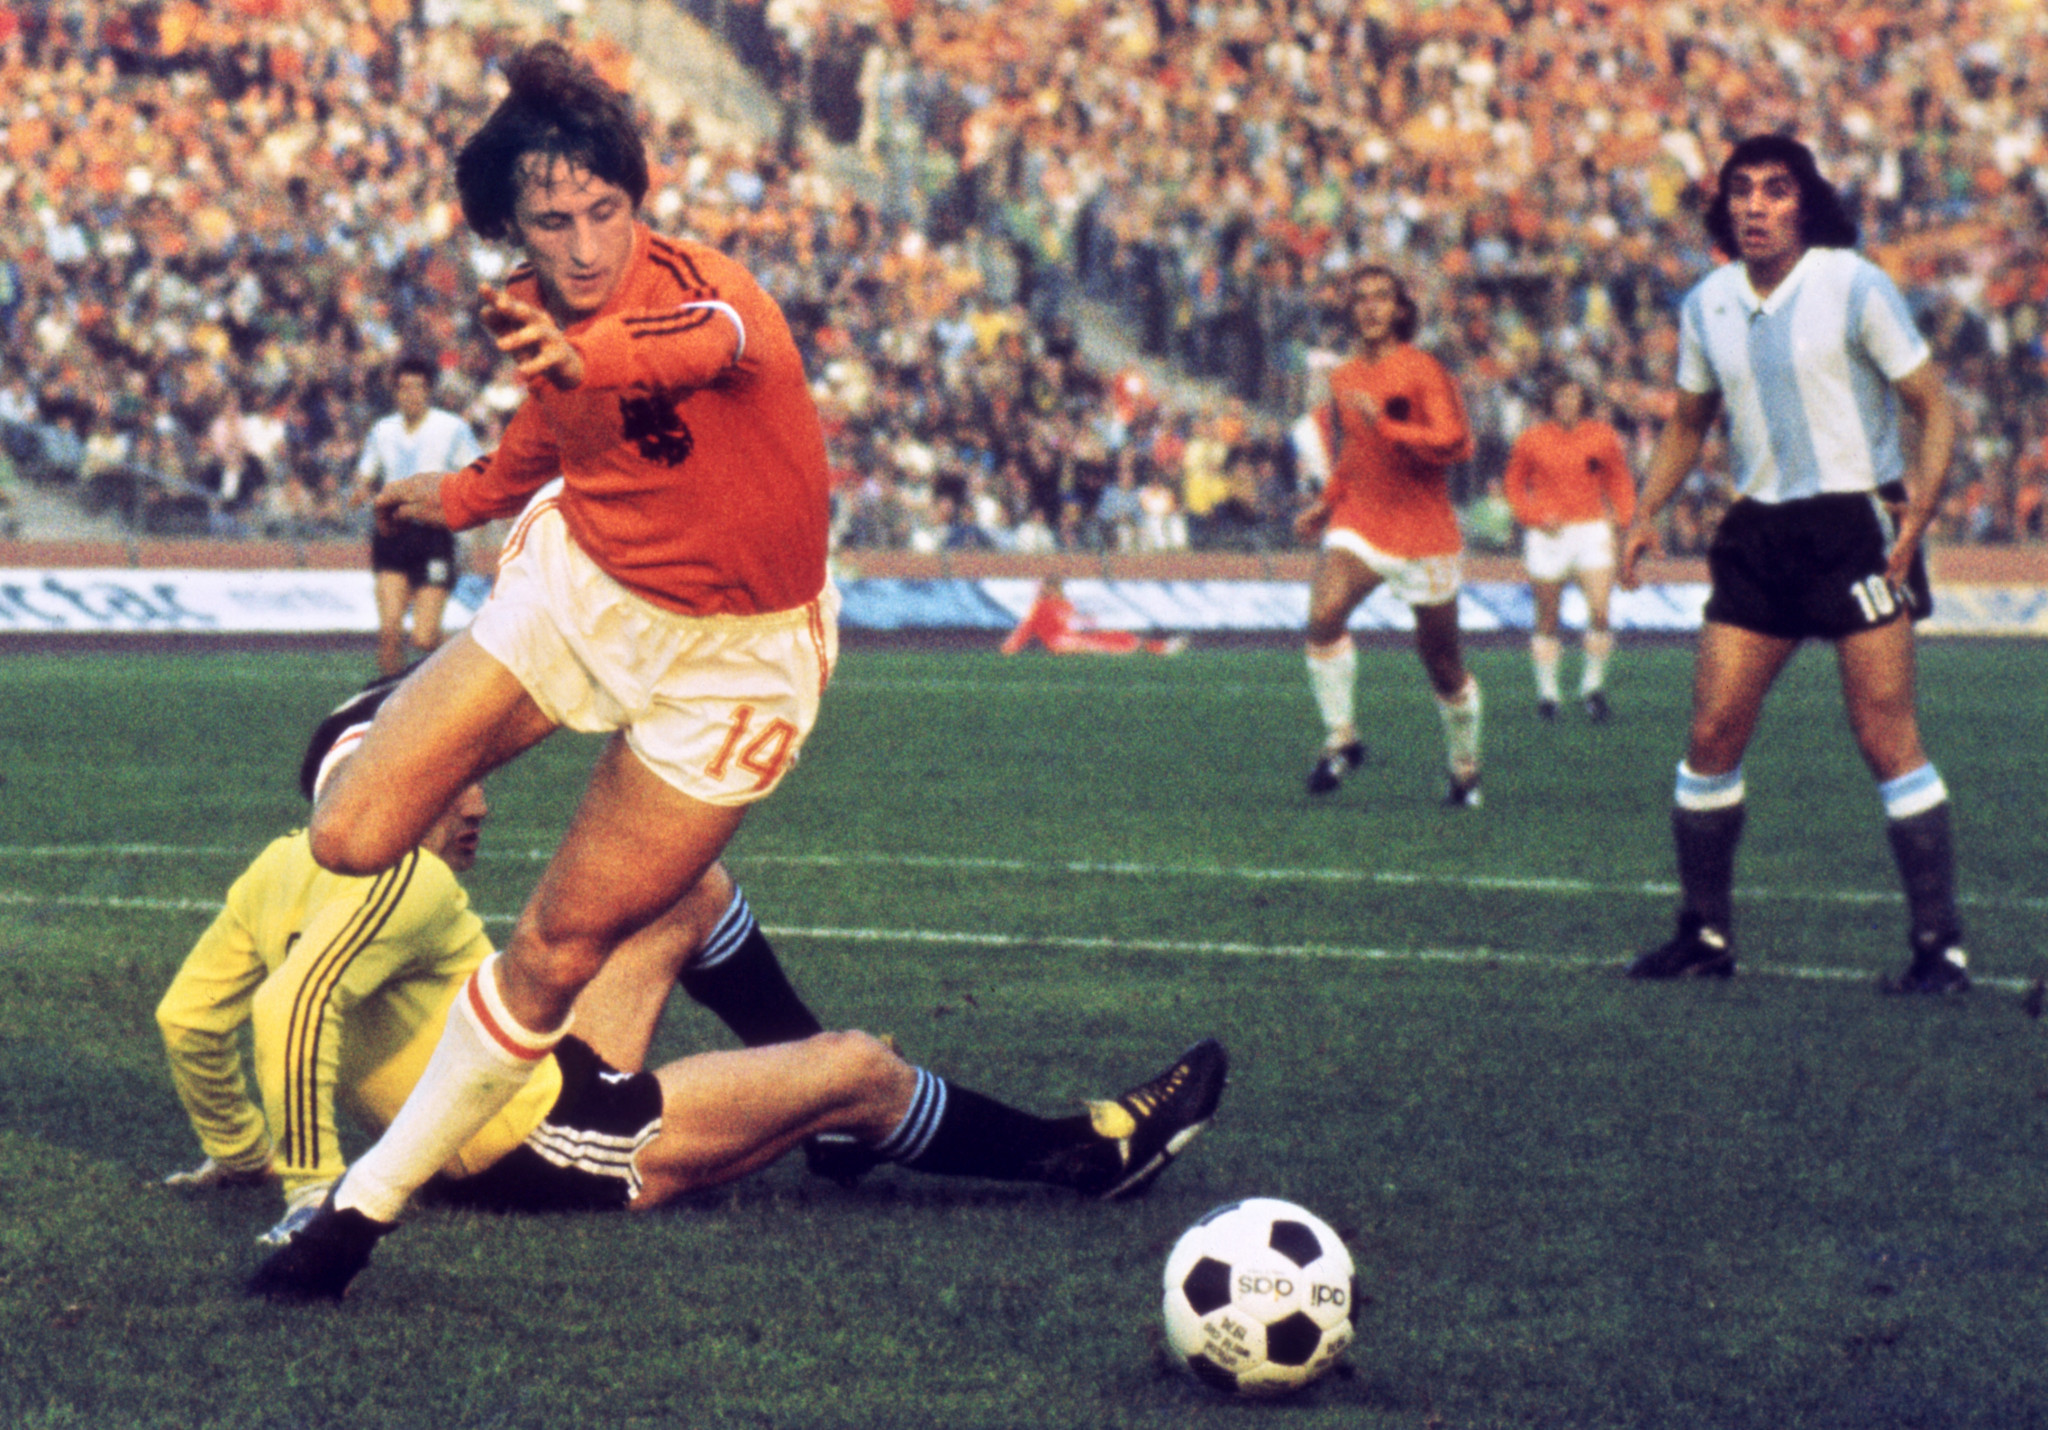 Johan Cruyff led The Netherlands to the 1974 FIFA World Cup final in West Germany ©Getty Images